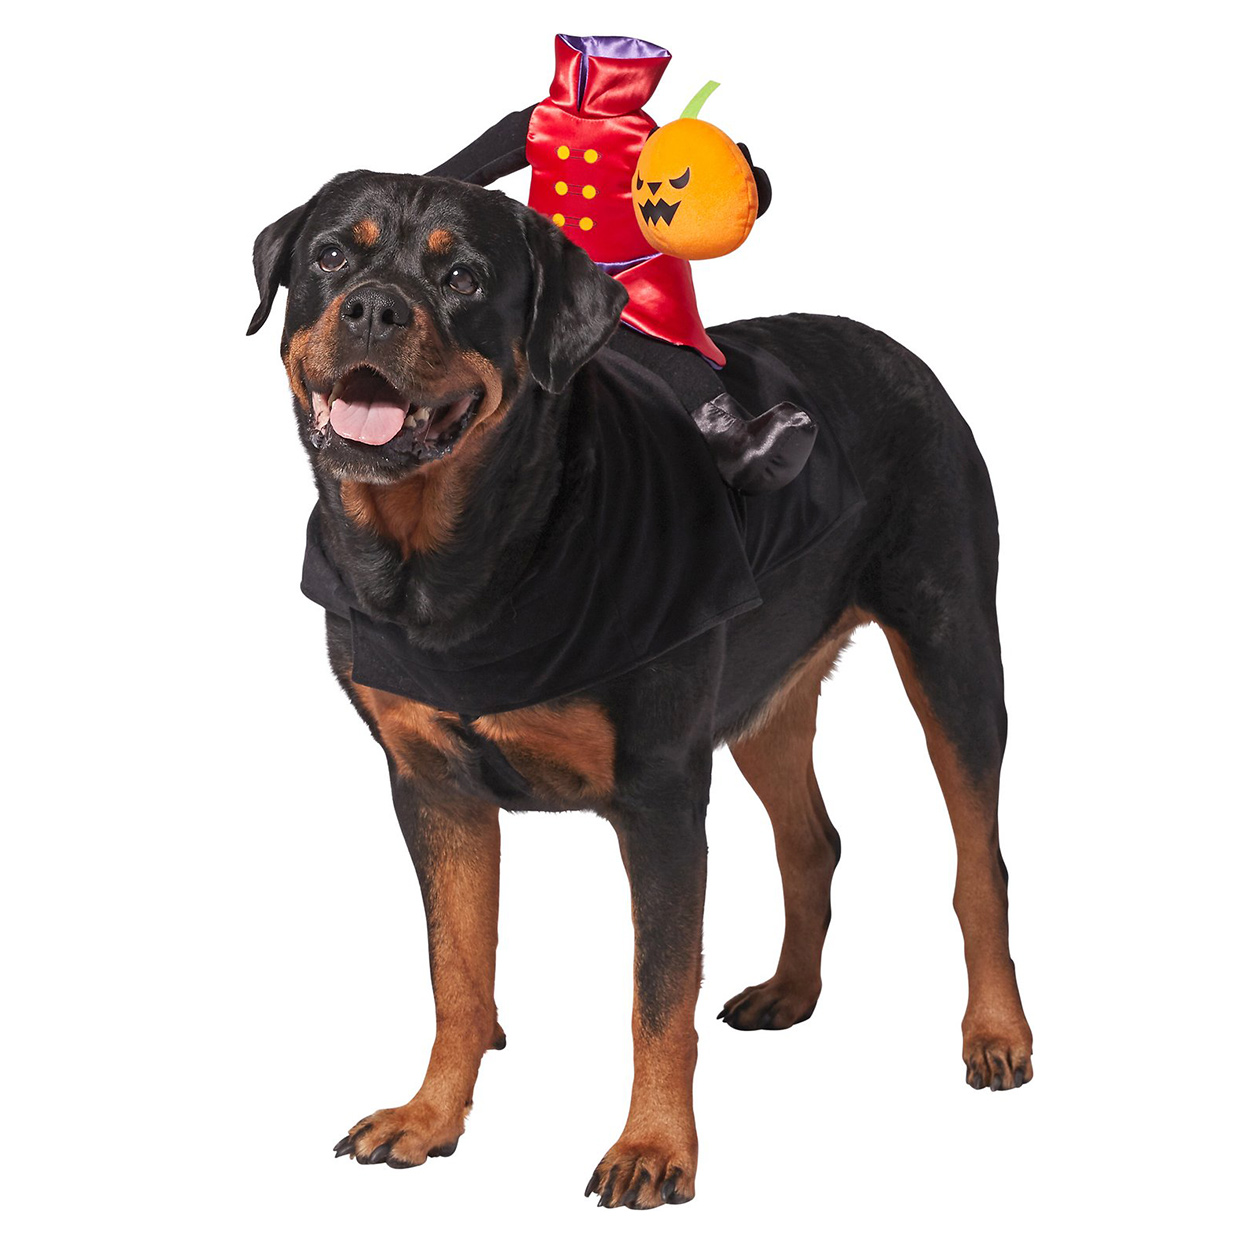 Dog wearing the Headless Rider Dog & Cat Costume on a white background